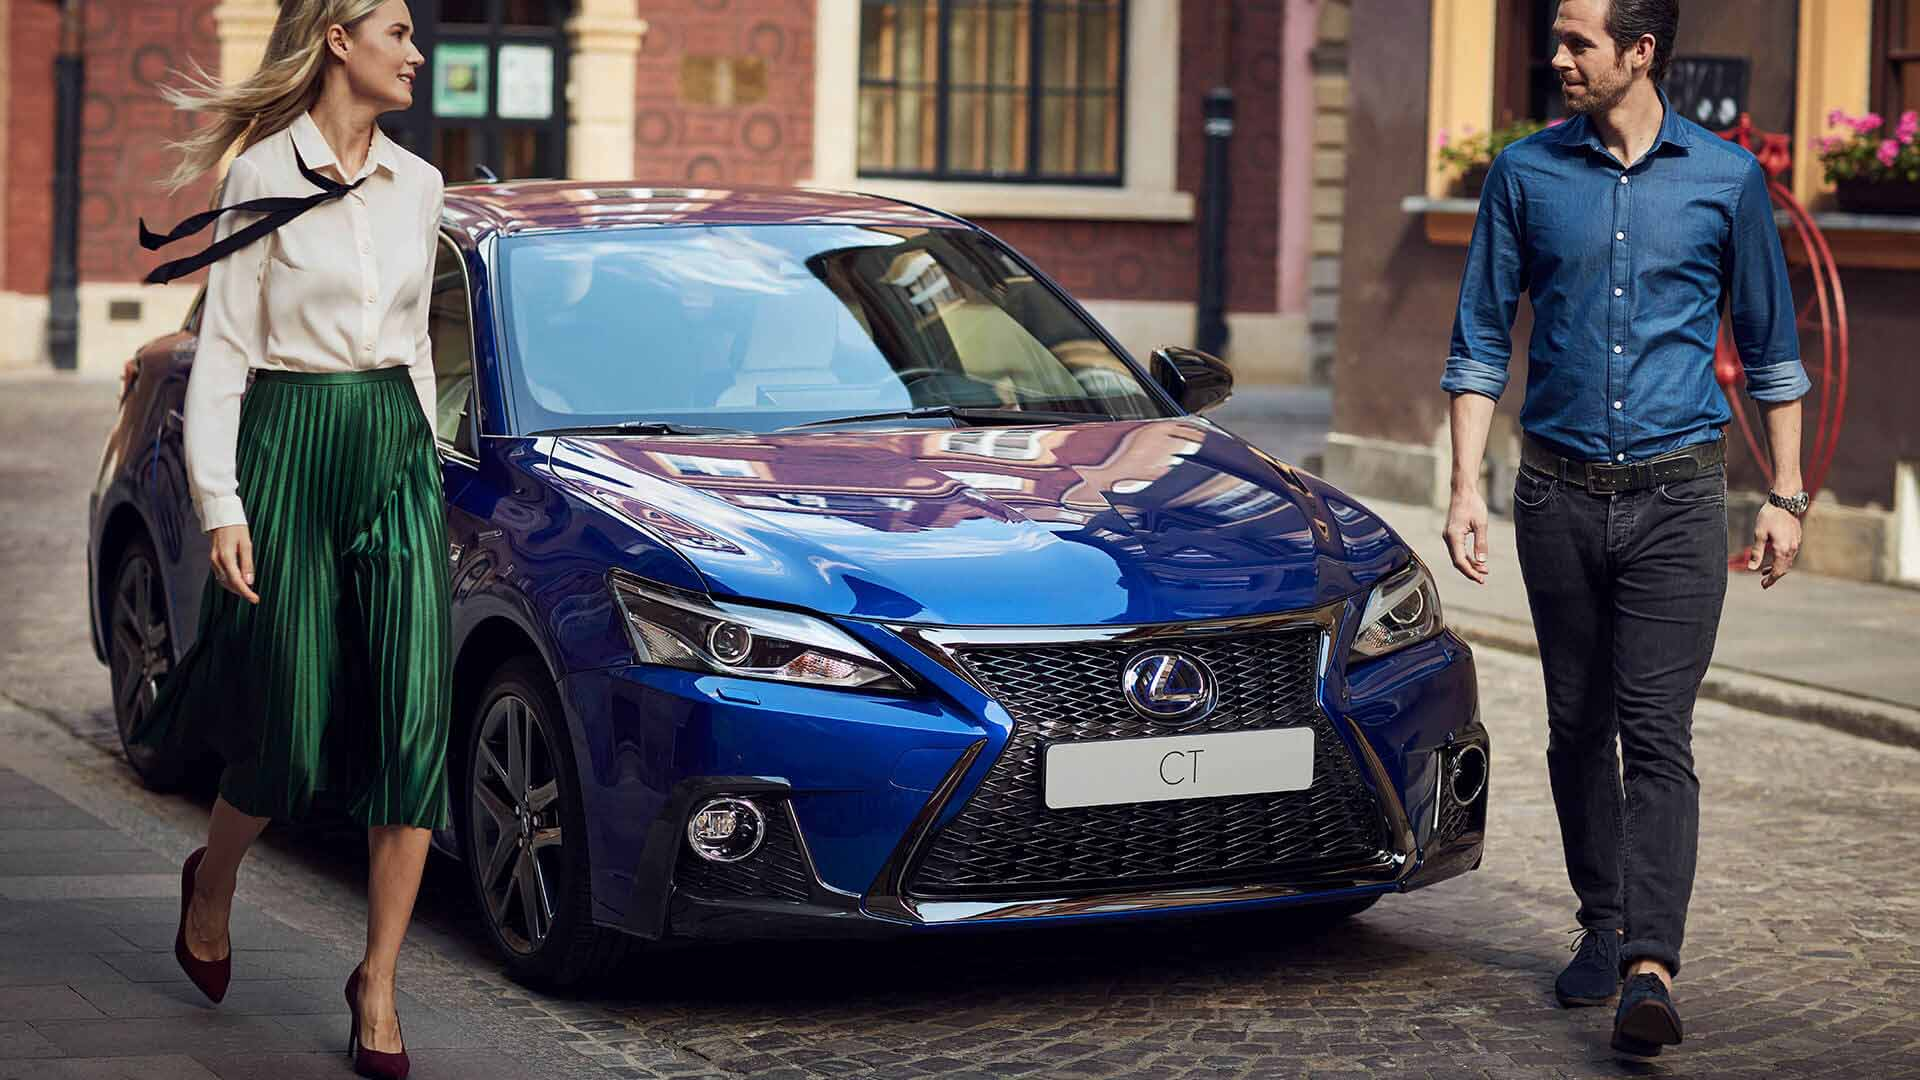 2018 lexus ct 200h my18 gallery 031 lifestyle